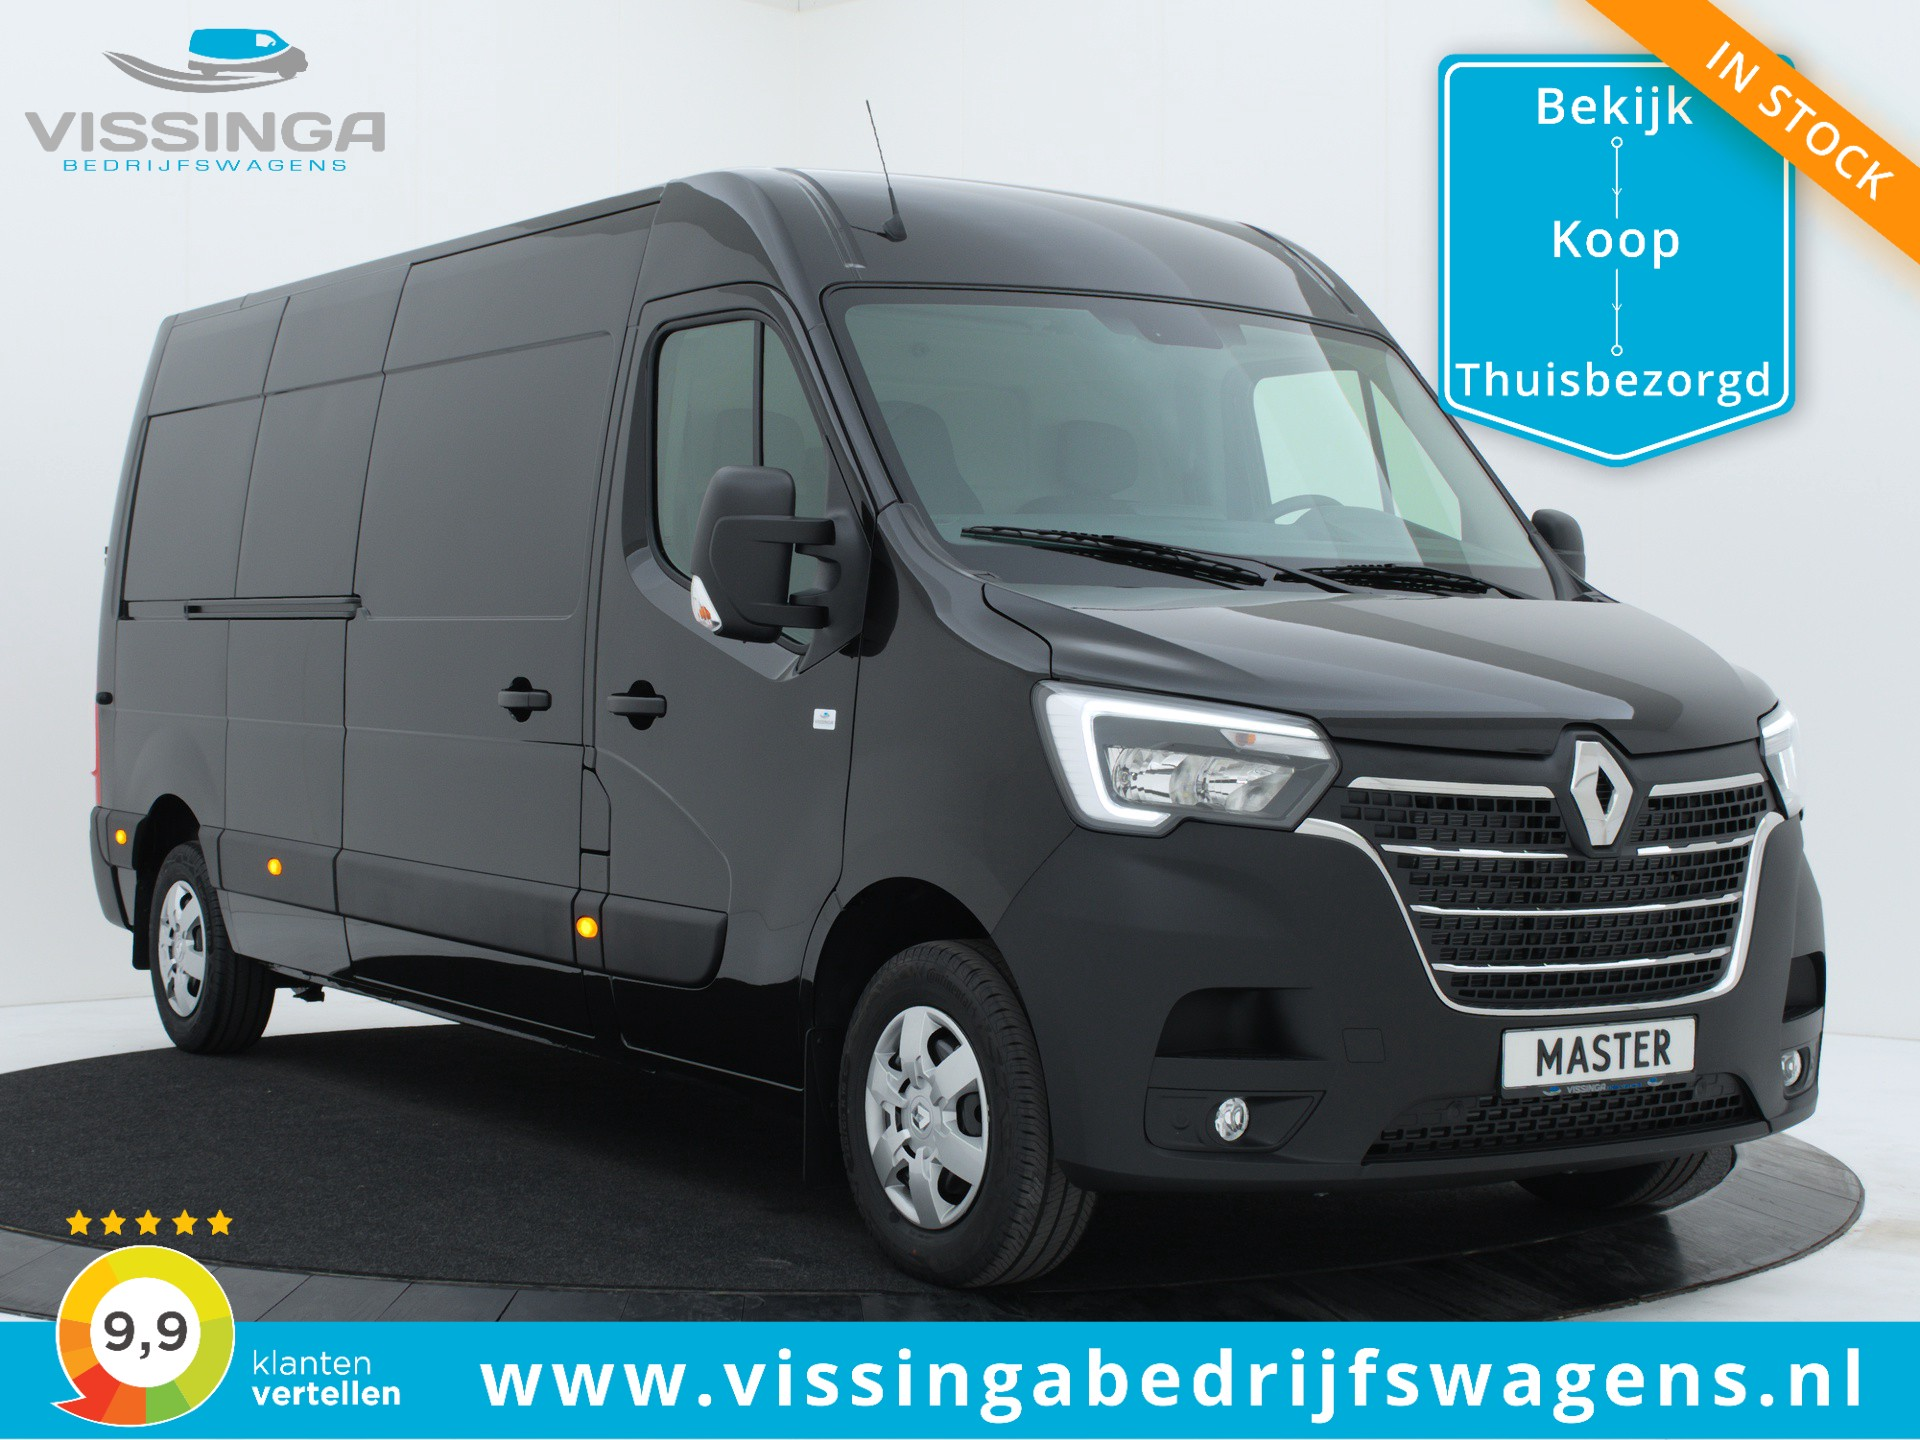 Renault Master T35 2.3 dCi L3H2 180 pk Twin-Turbo Light Duty